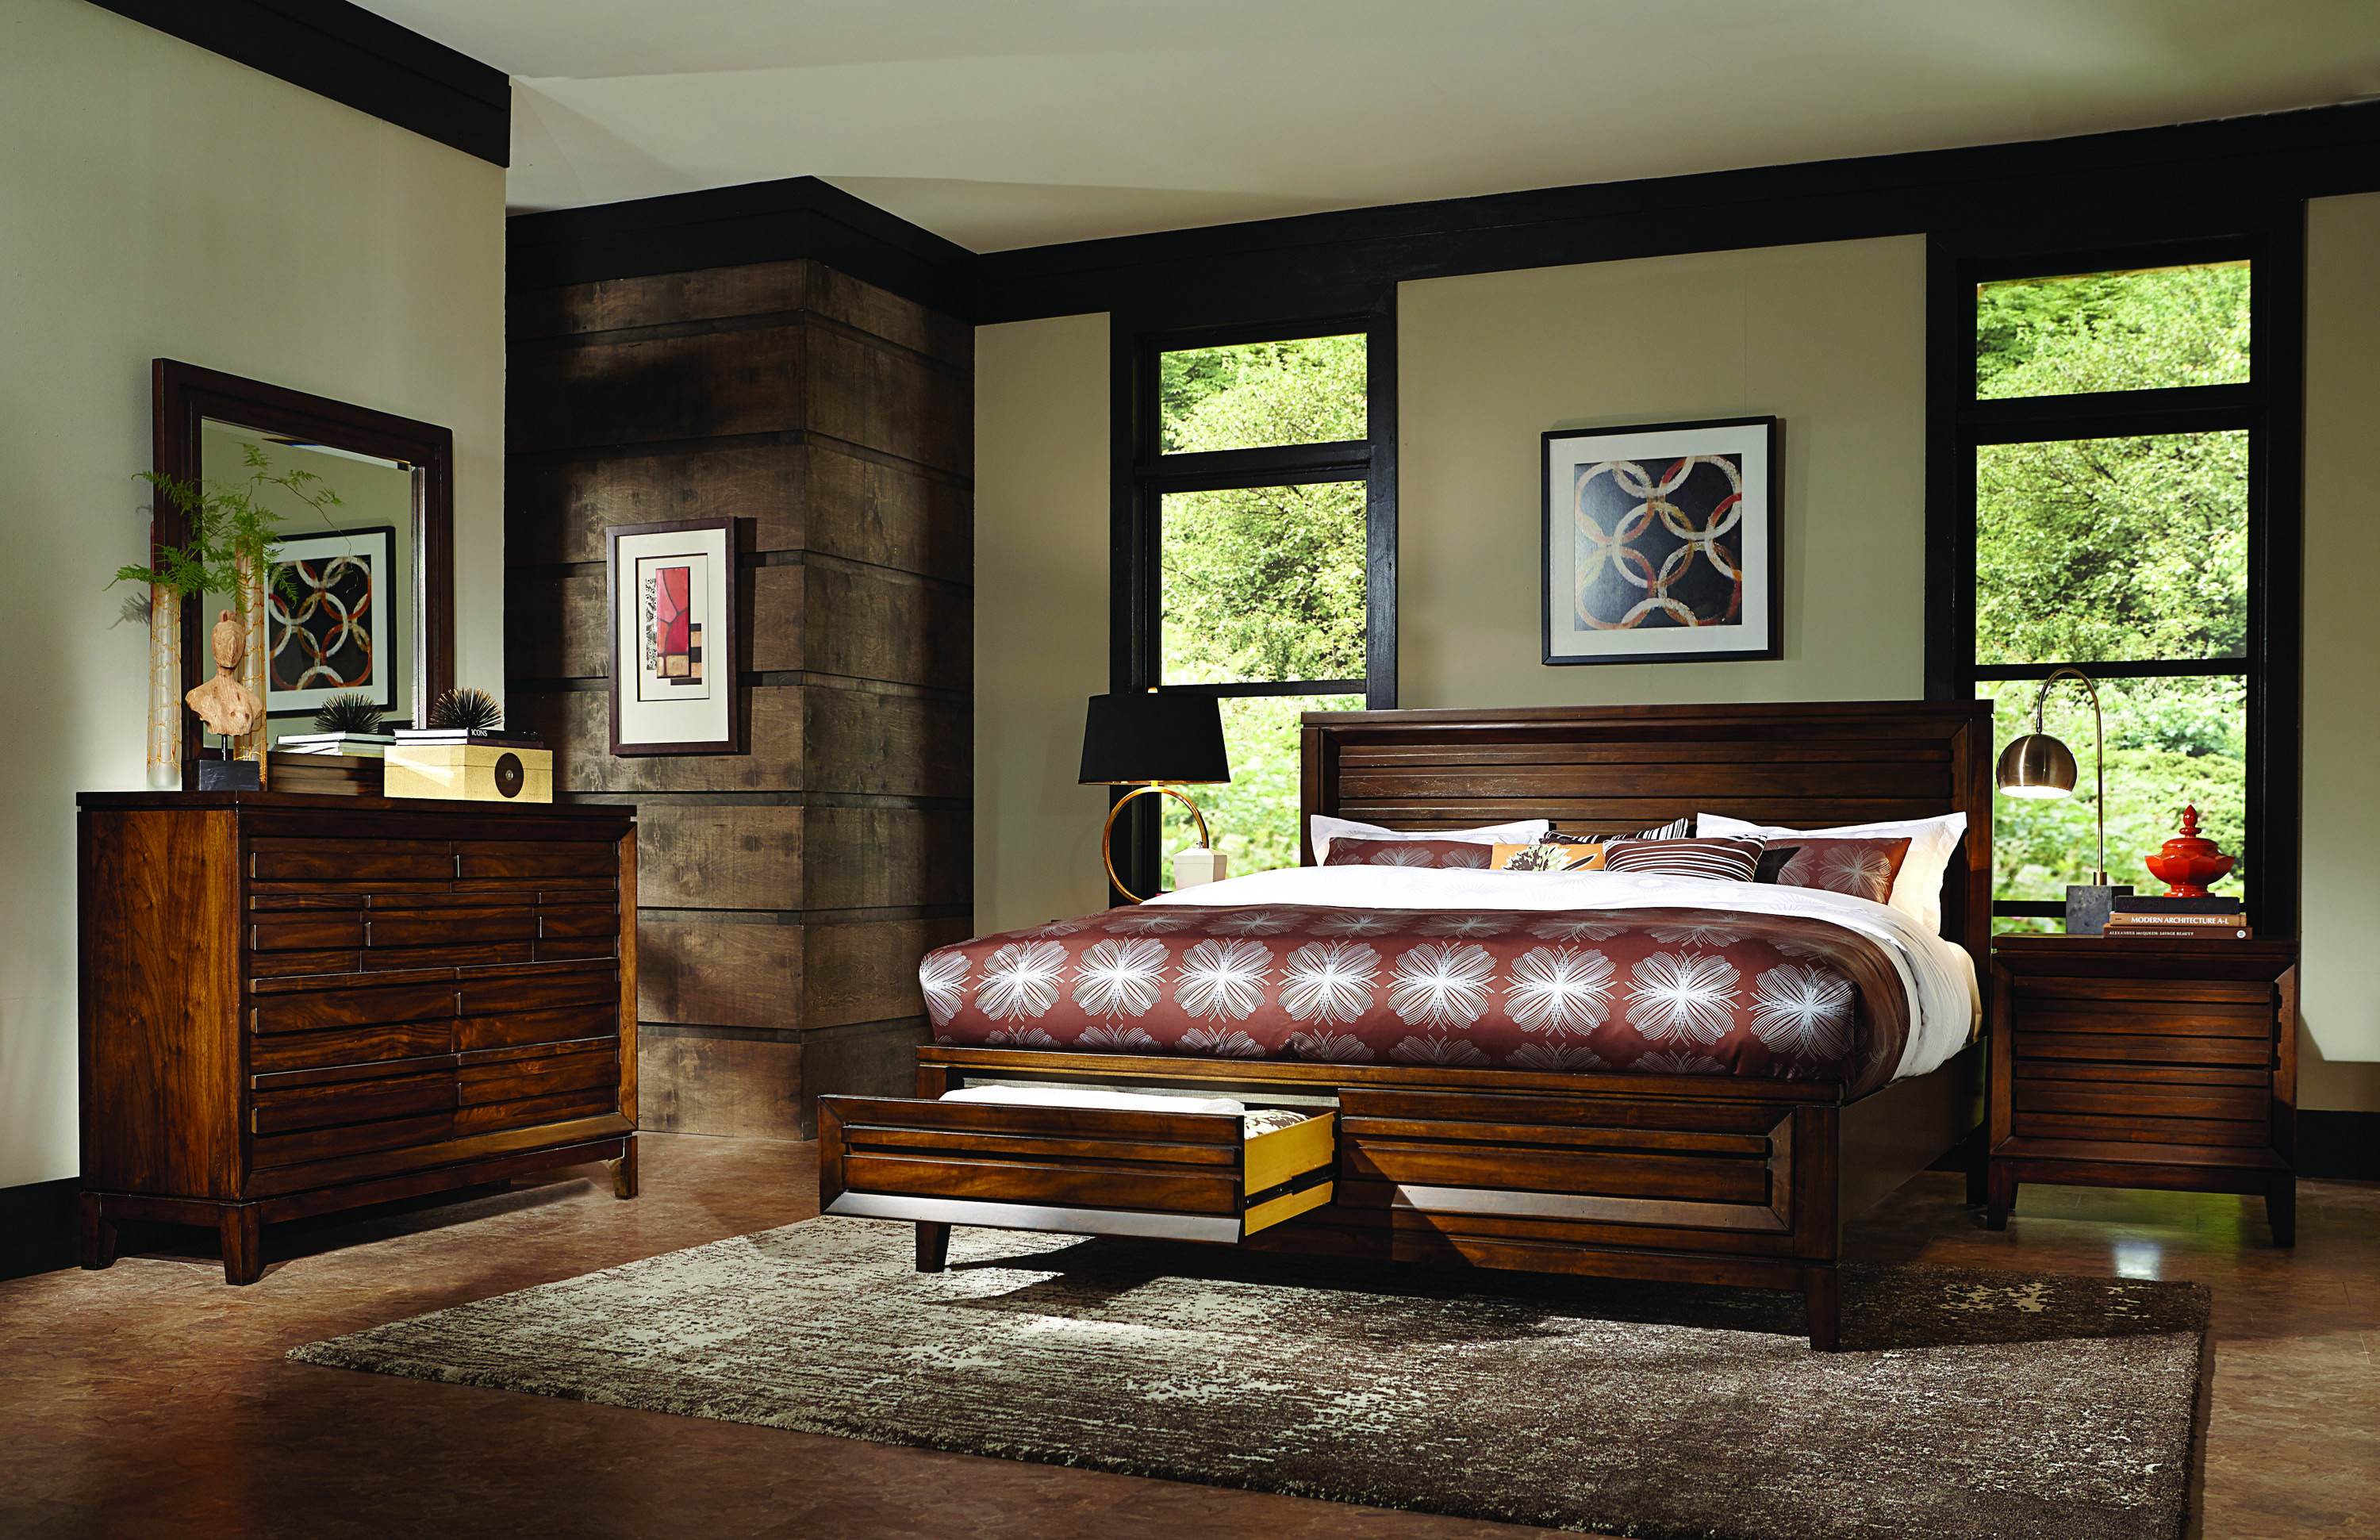 Bedroom furniture affordable quality northwest bedding for Affordable quality bedroom furniture